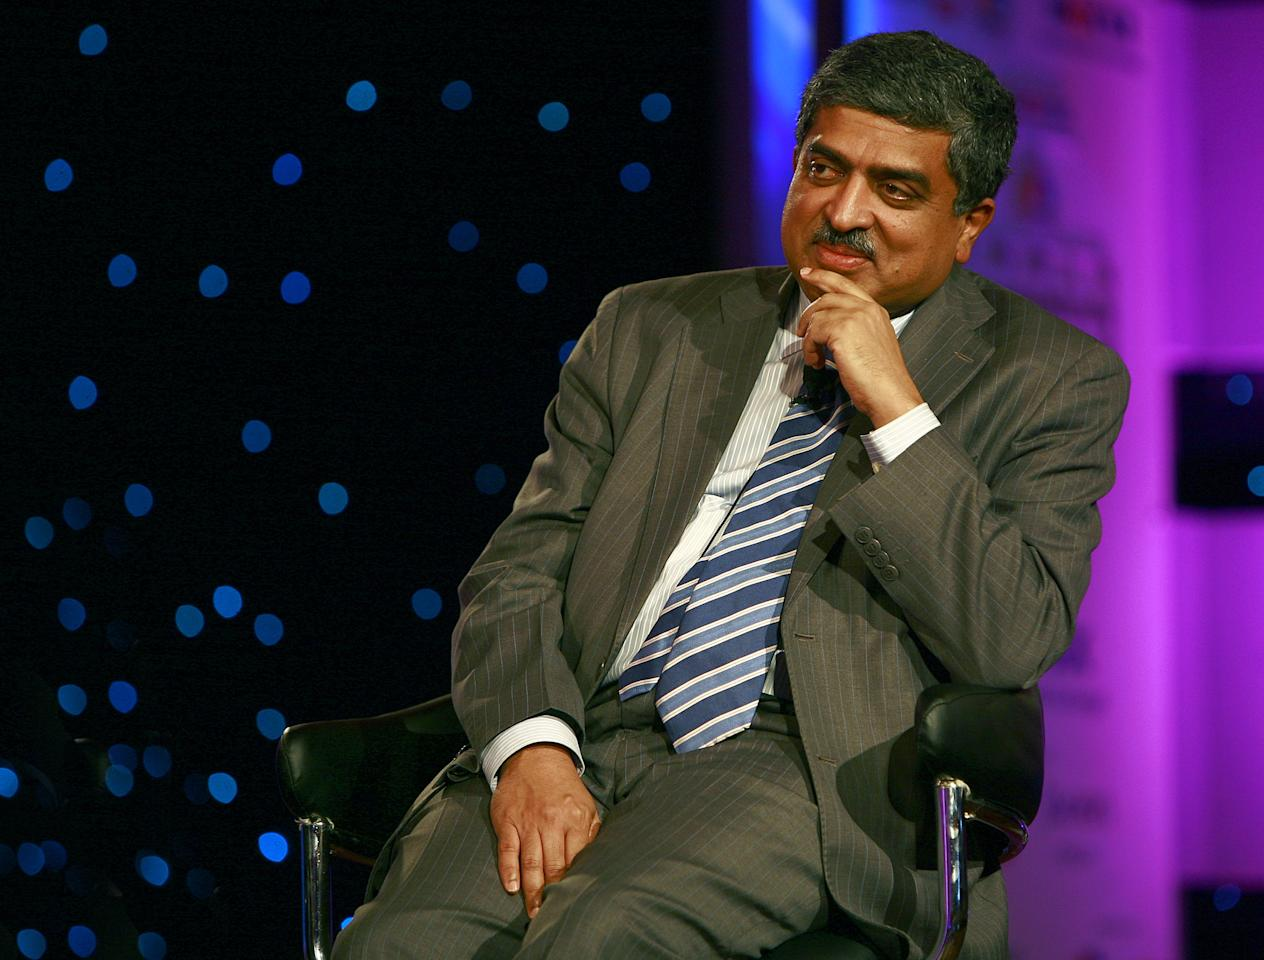 <p>Nandan Nilekani (62): Infosys co-founder and tech billionaire Nandan Nilekani and his wife Rohini Nilekani have joined 'The Giving Pledge', an elite network of the world's wealthiest individuals committing half their wealth to philanthropy. The Giving Pledge was created by Bill and Melinda Gates and Warren Buffett in August 2010. The Nilekanis have now decided to give away half their wealth for altruism. </p>